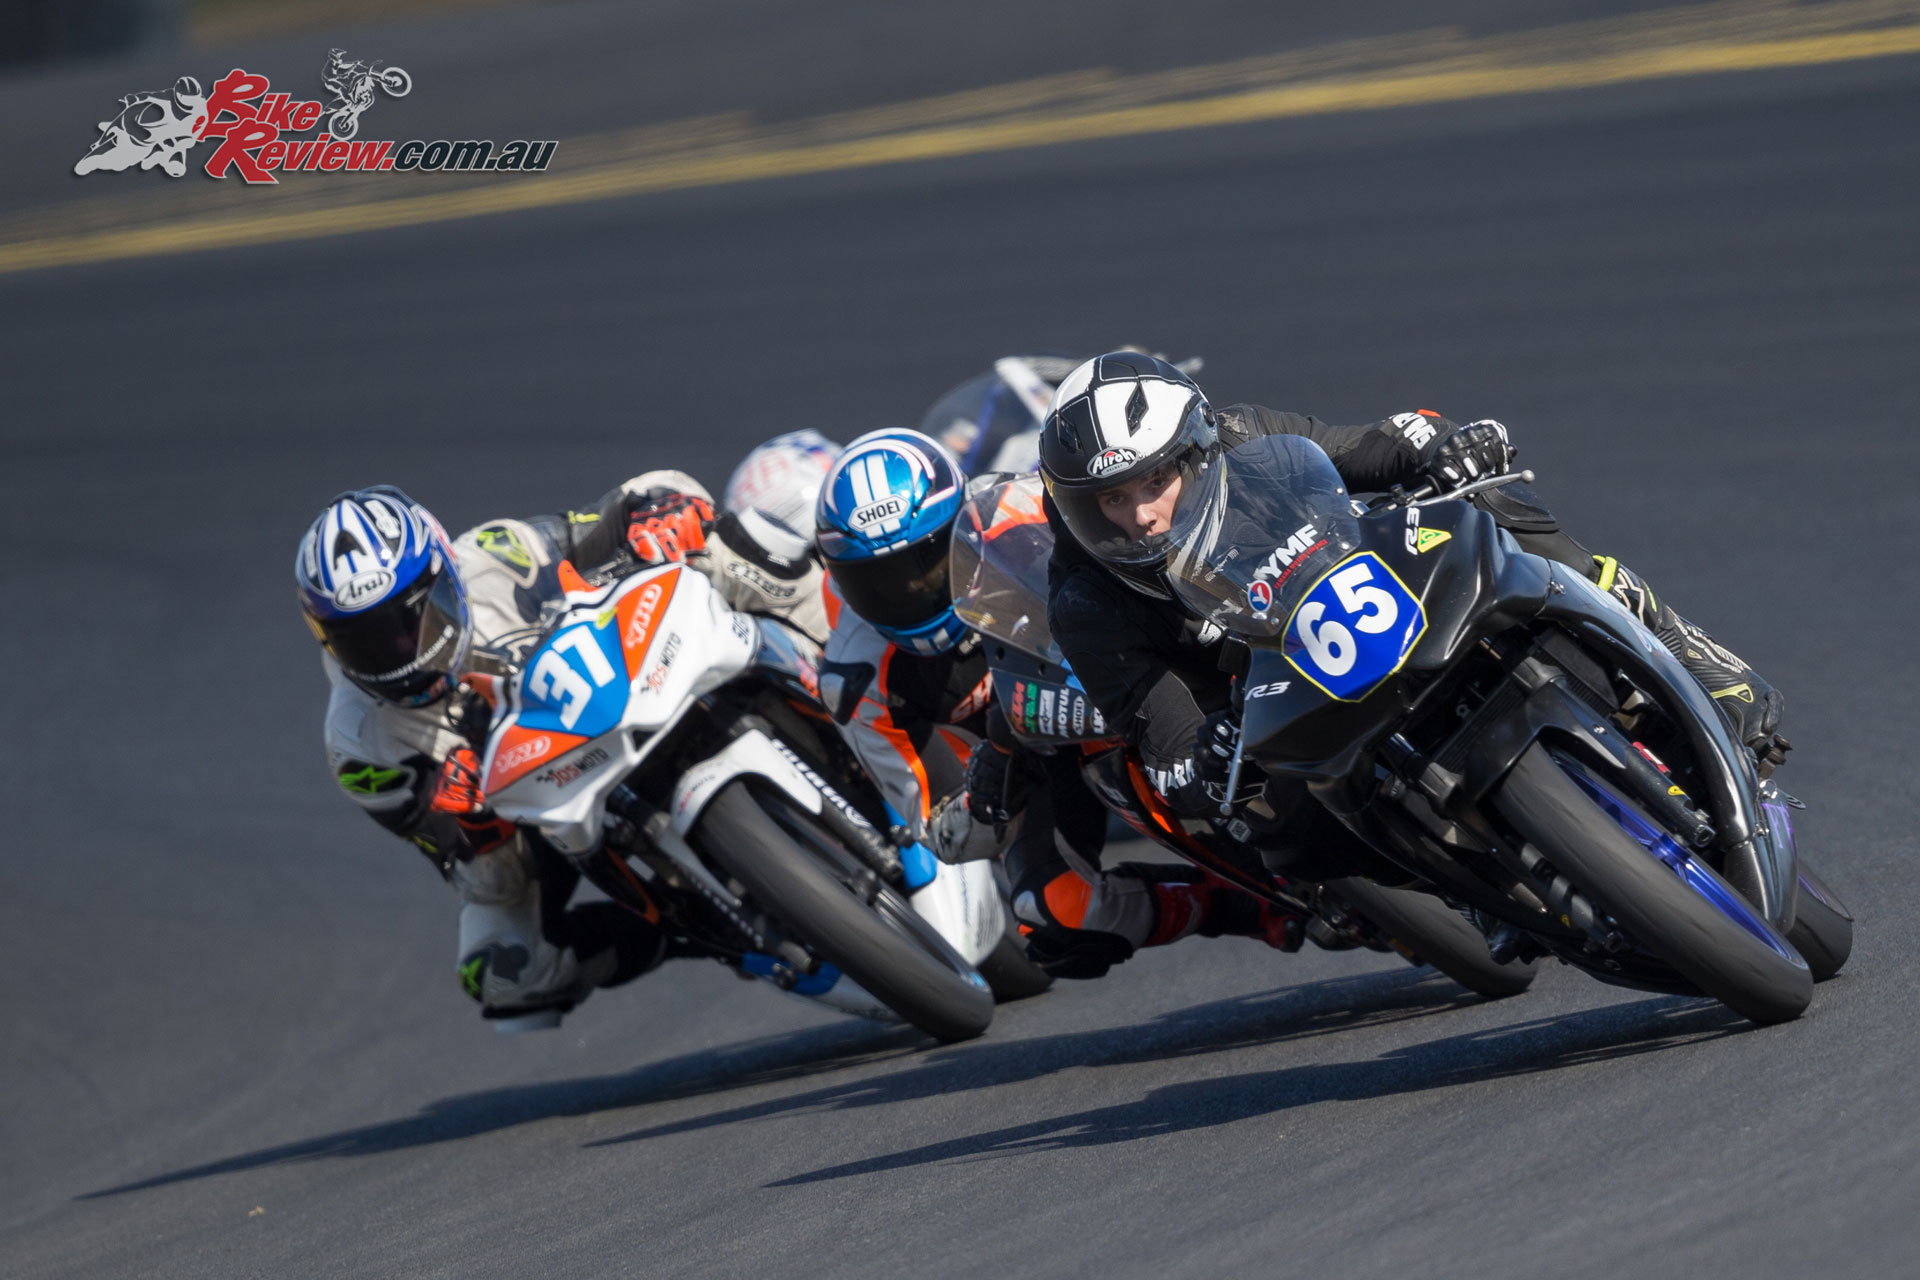 Supersport 300 battle